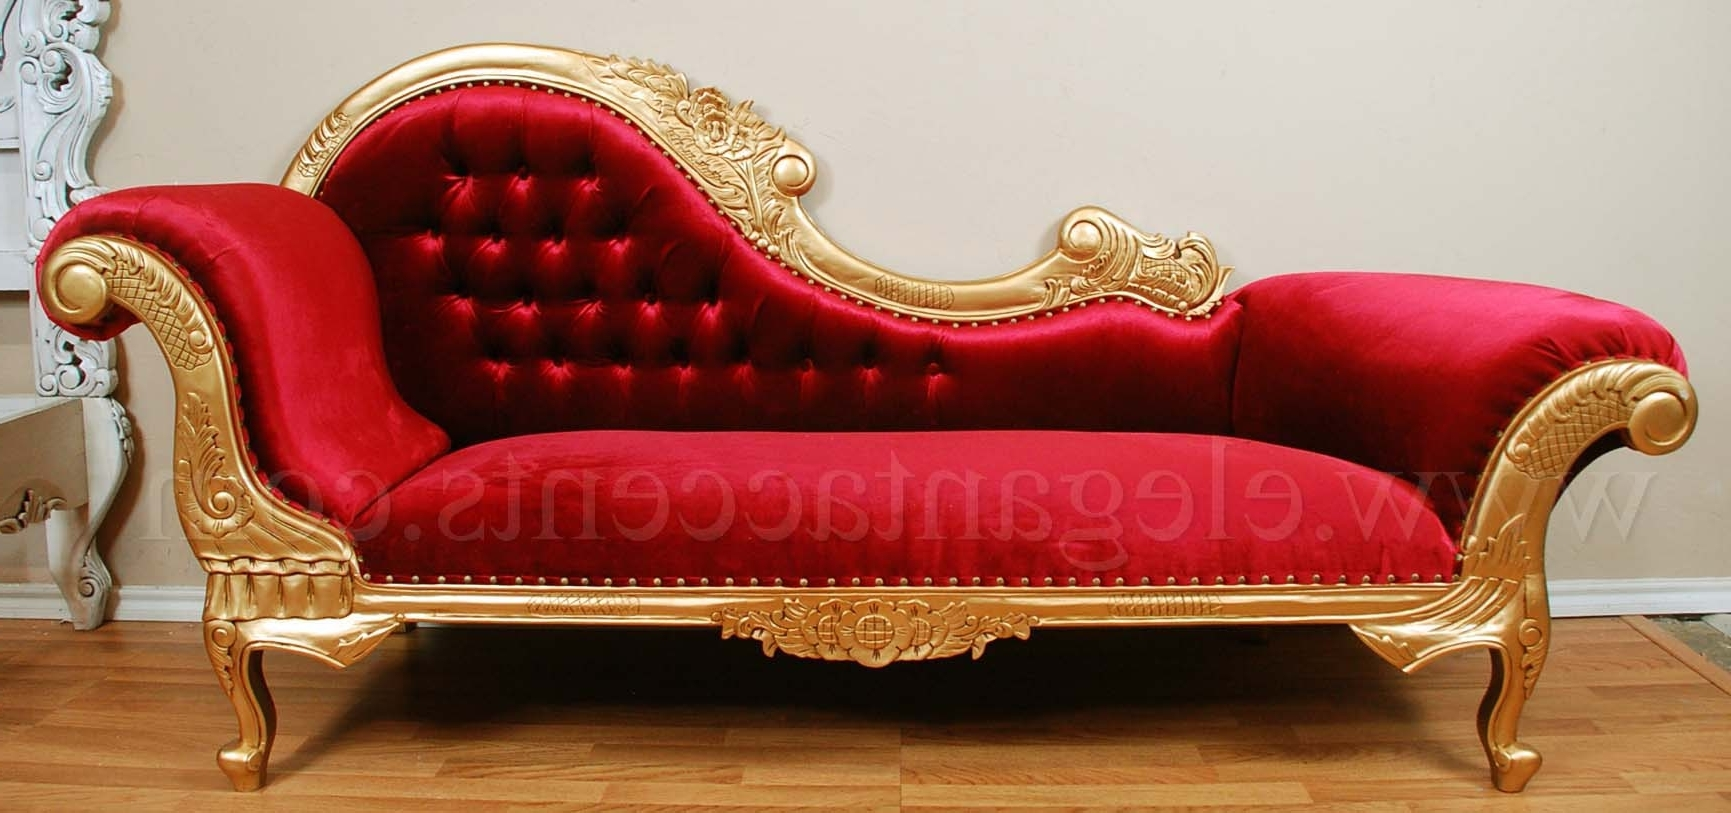 Gold Chaise Lounges With Regard To Popular Impressive On Victorian Chaise Lounge With Victorian Chaise Gold (View 7 of 15)